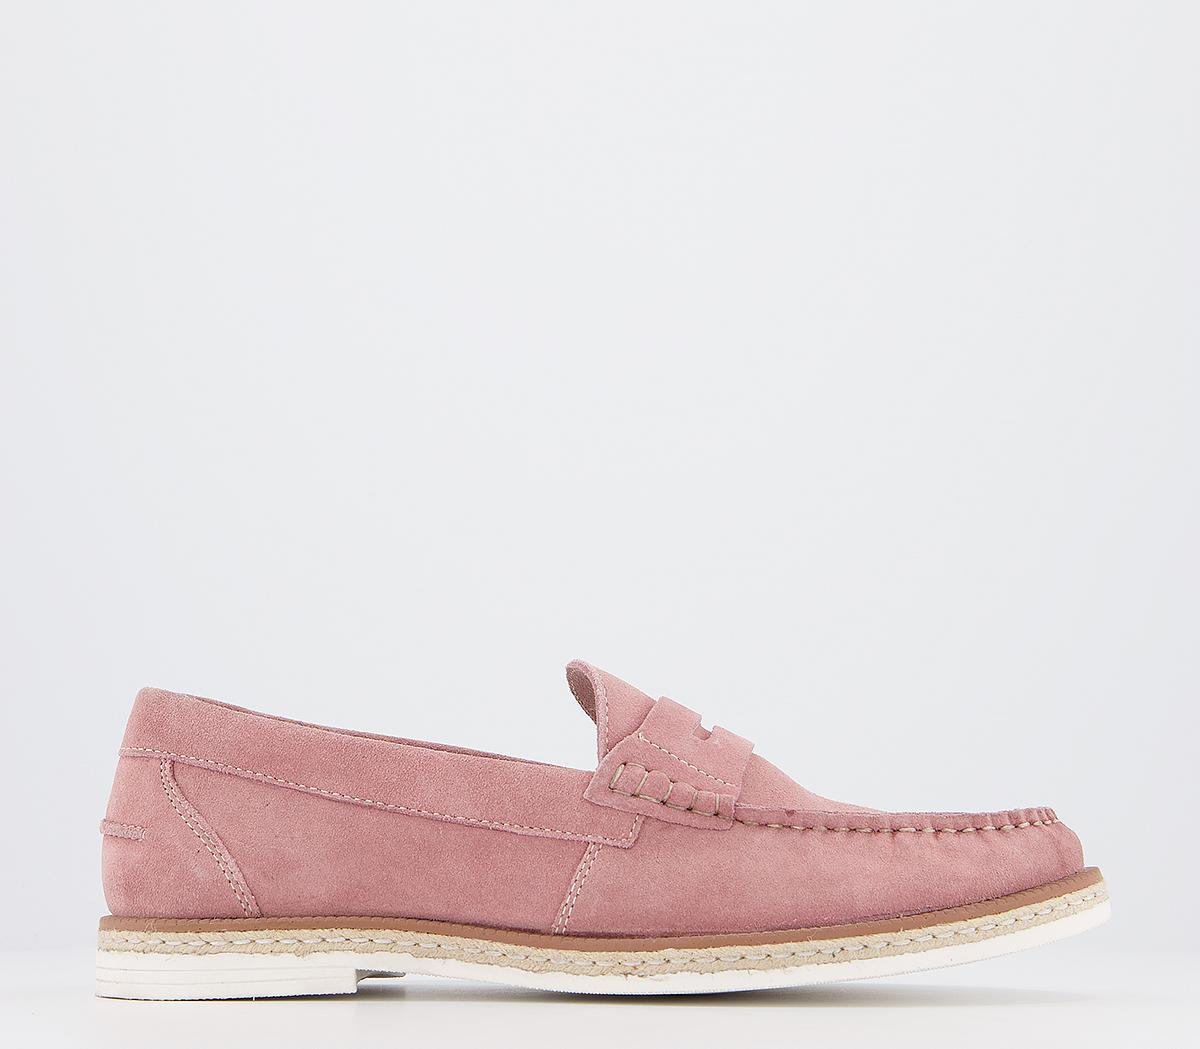 Office Claud Penny Loafers Pink Suede